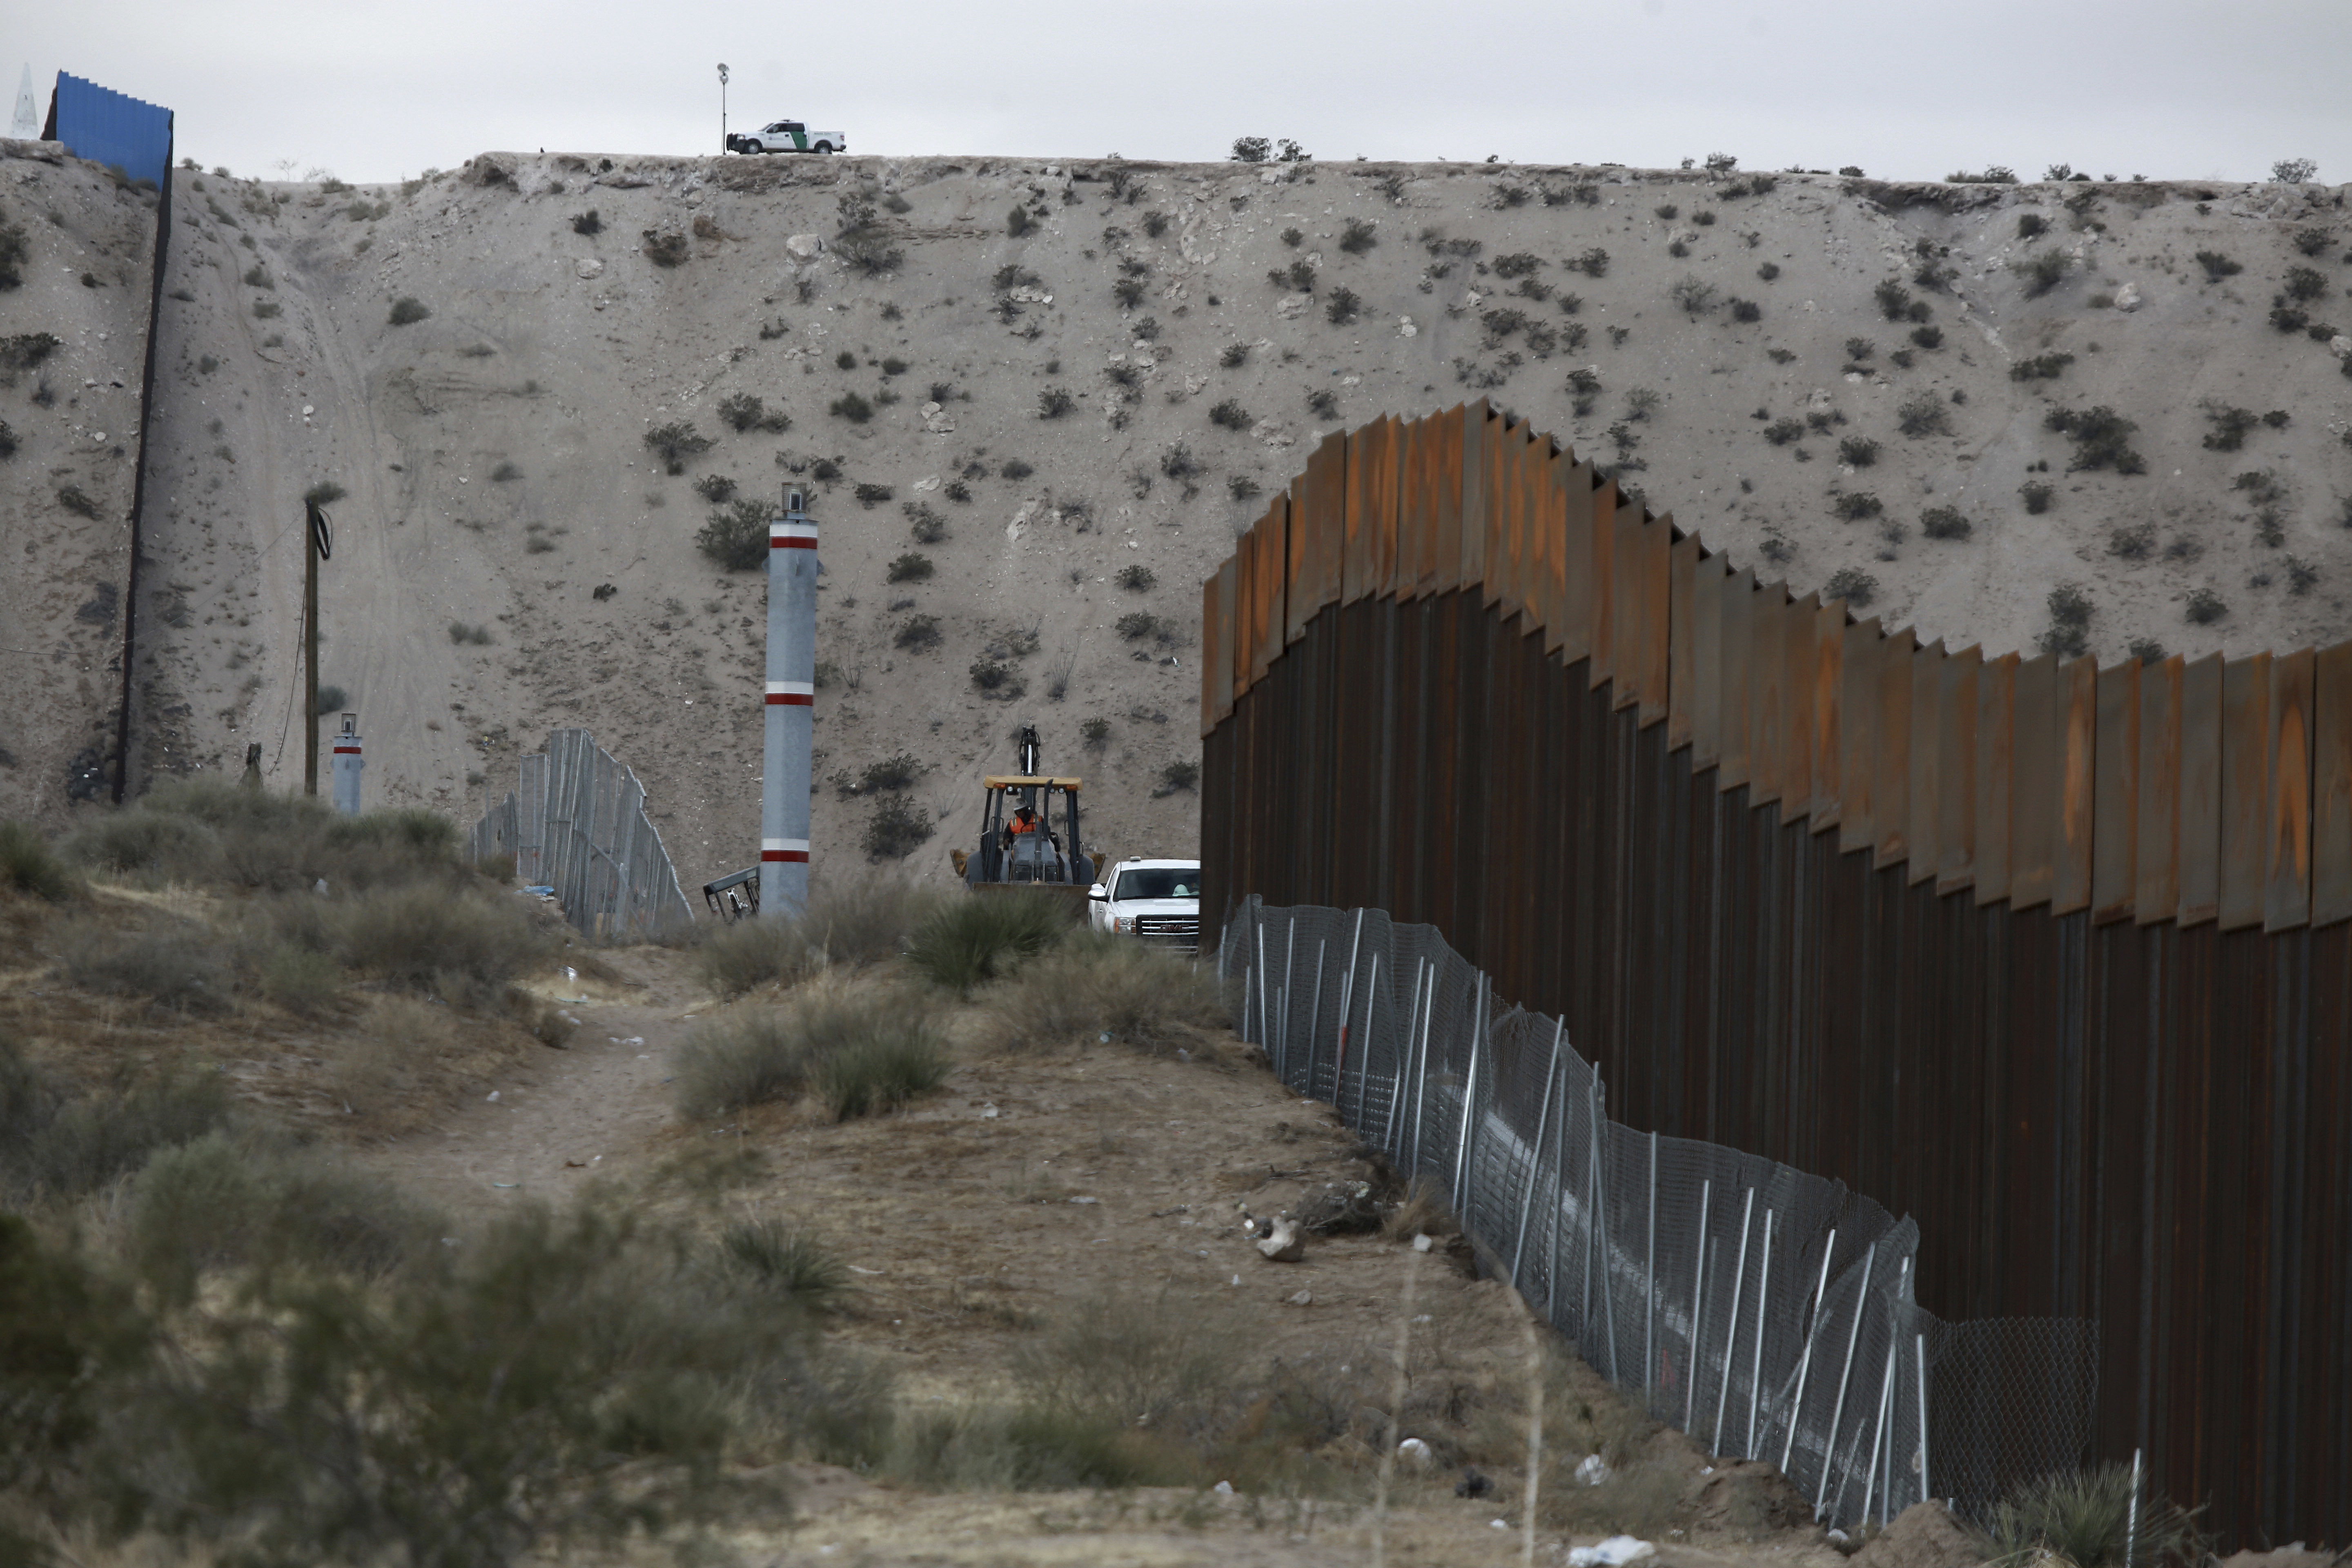 GOP Wants Taxpayers to Pay for Donald Trump's U.S.-Mexico Border Wall